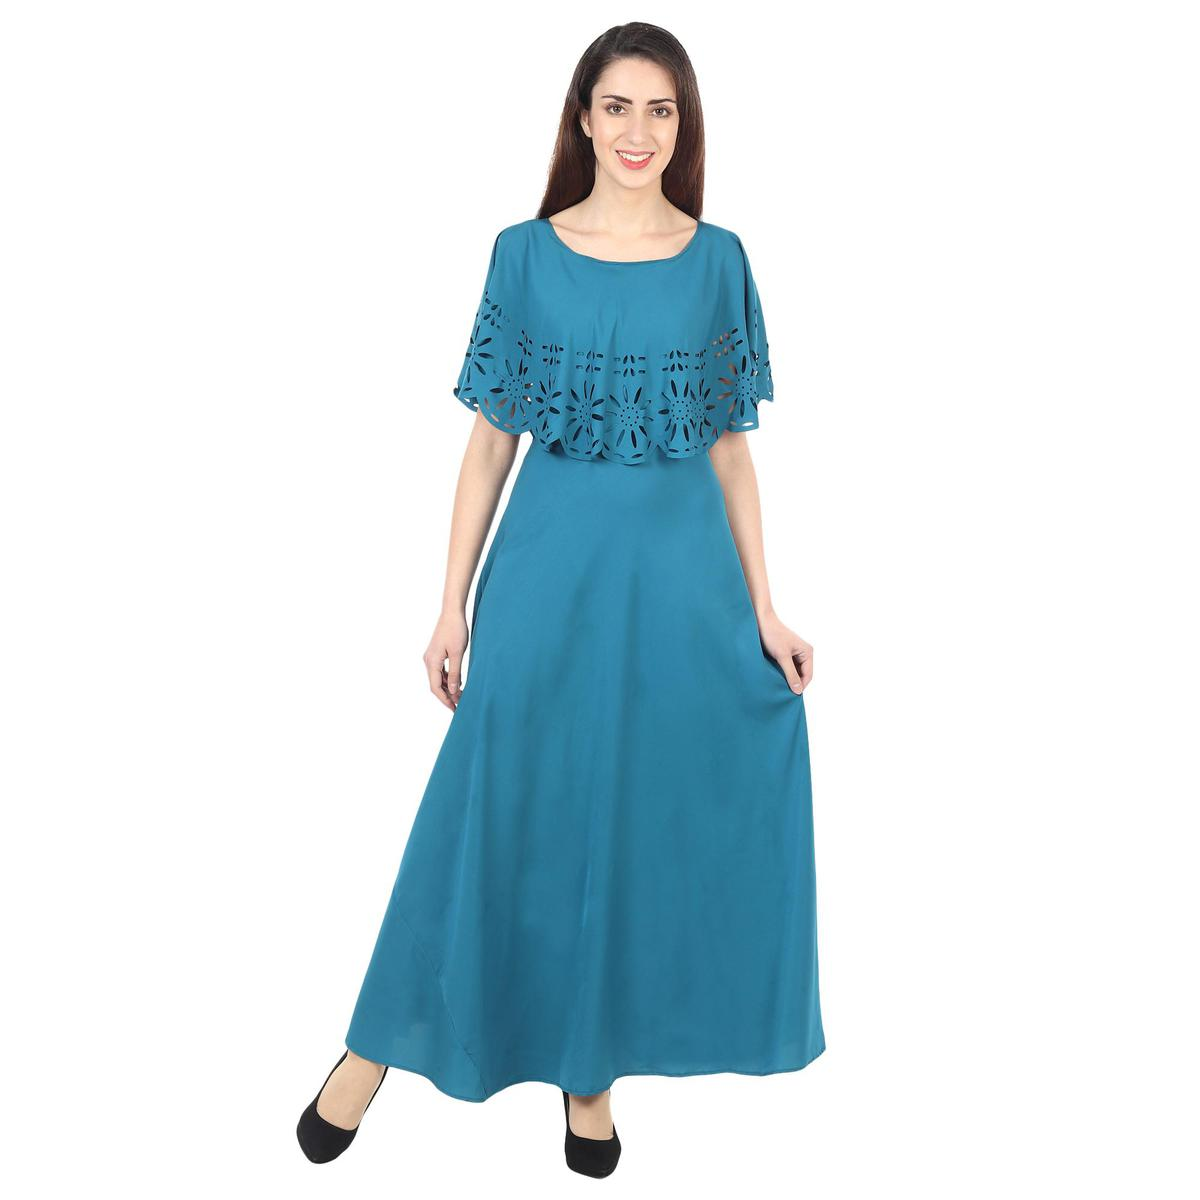 OMADAM - Teal Blue Colored Casual Wear Floral Crepe Cape Gown